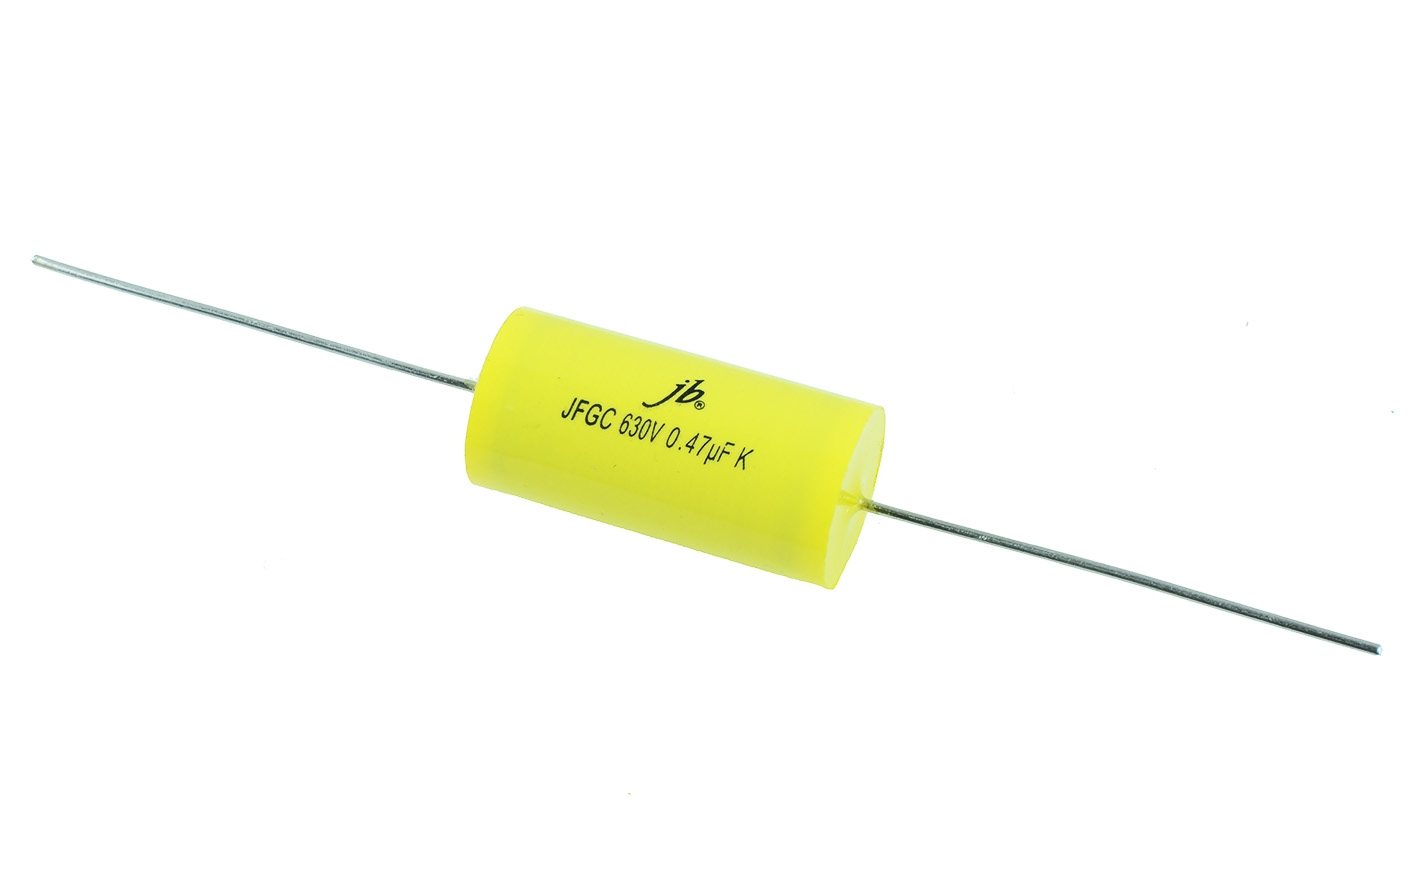 Axial Polypropylene Capacitors